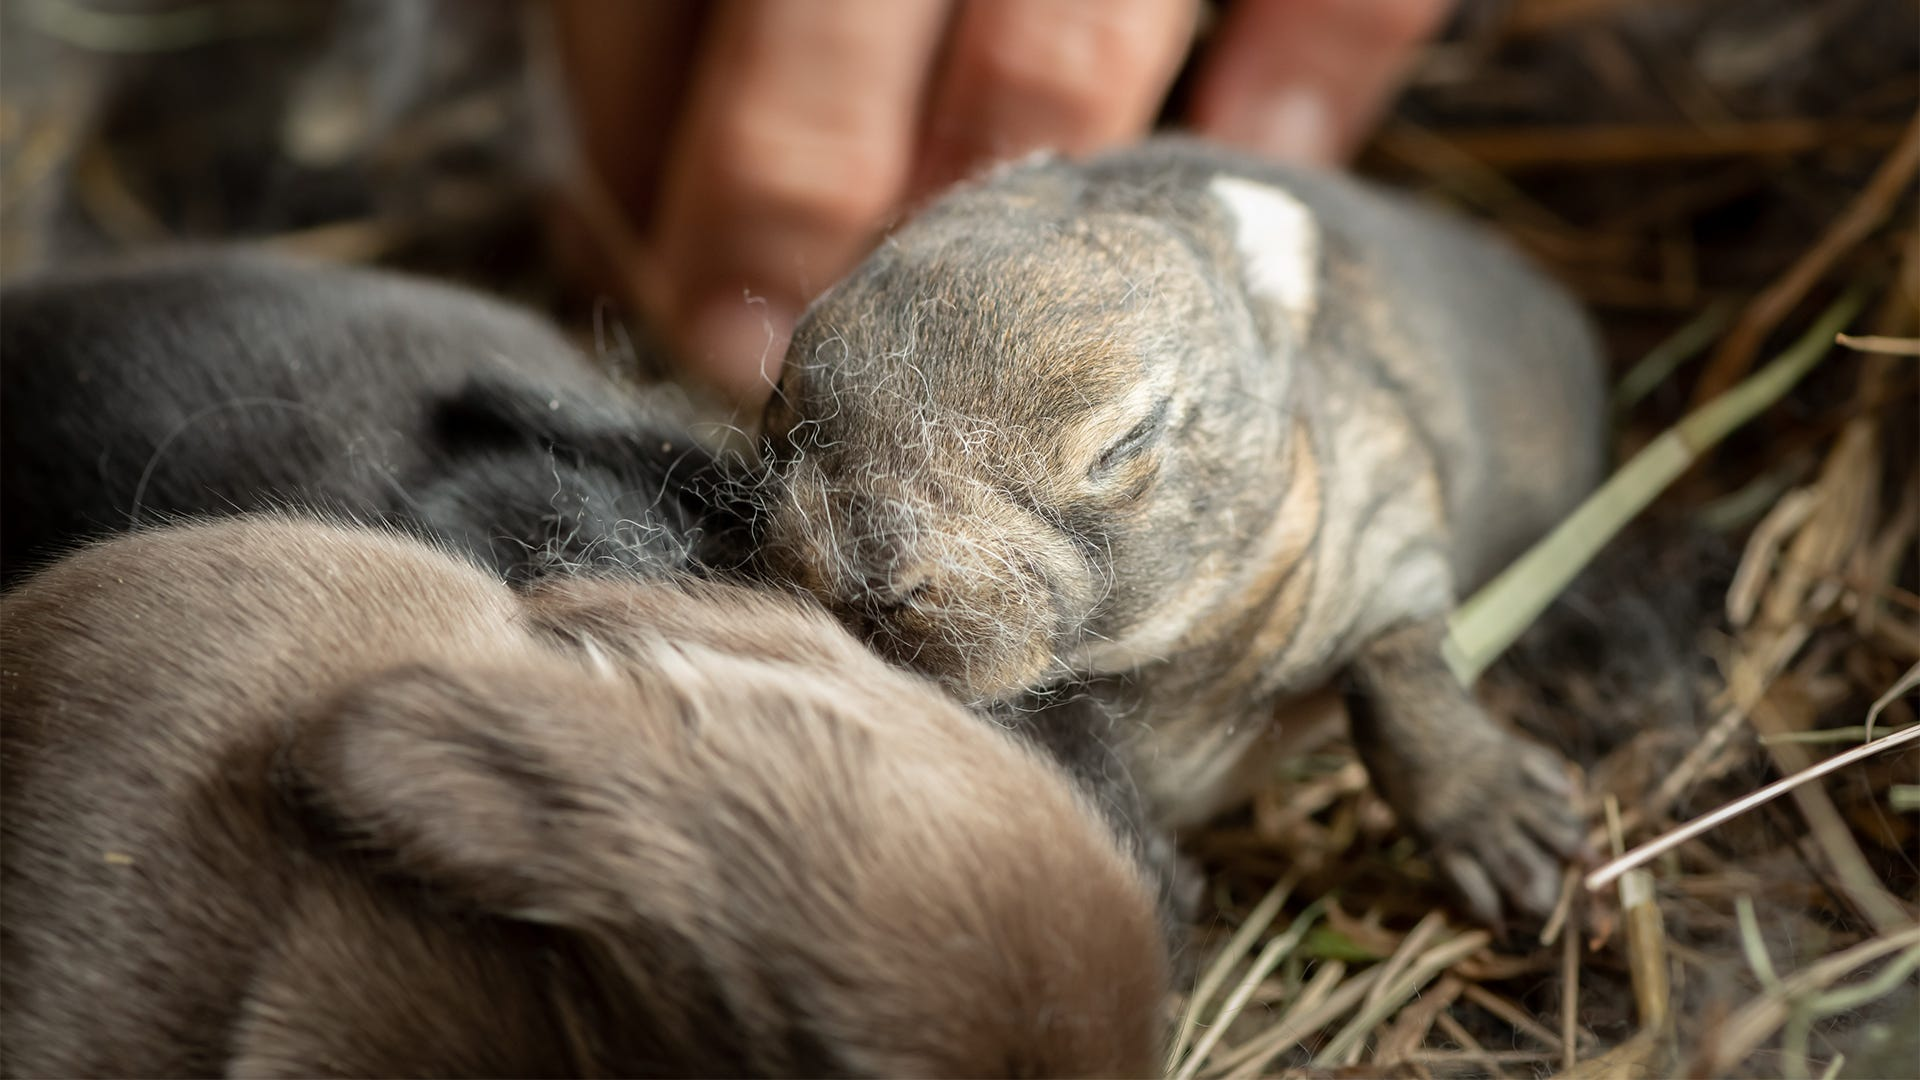 Found an Abandoned Baby Animal? Now What?